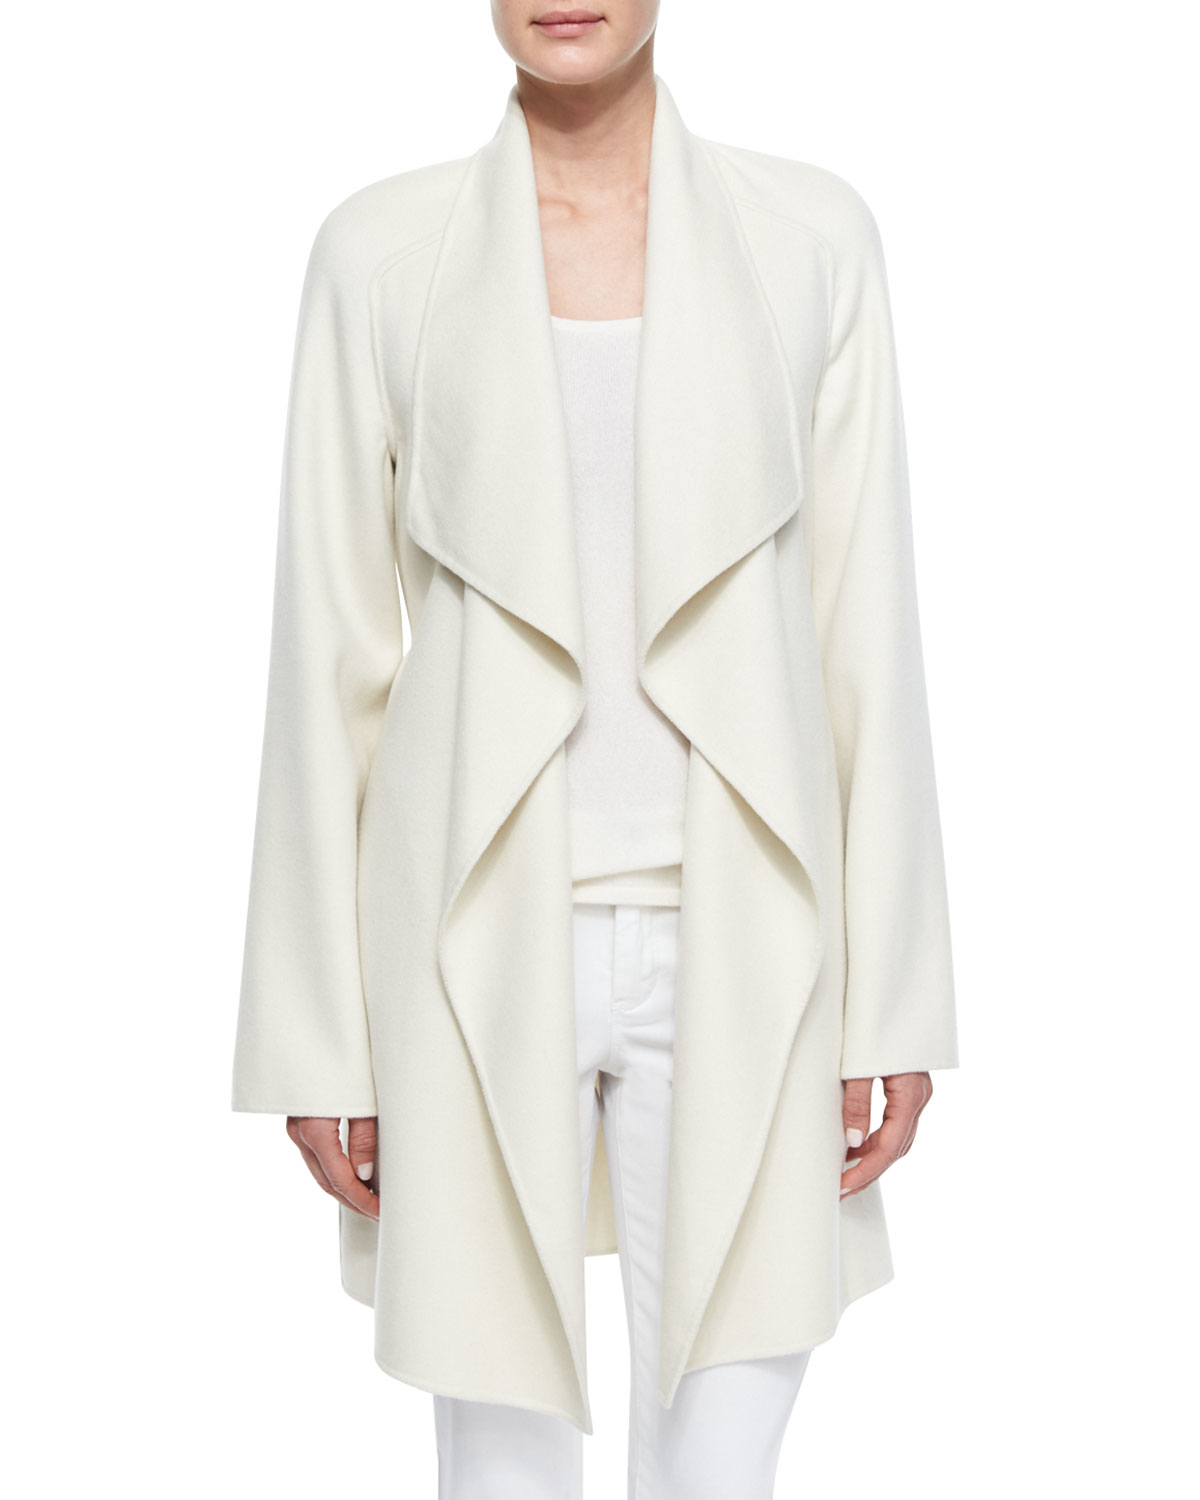 Neiman marcus Cashmere Double-face Wrap Coat in White | Lyst